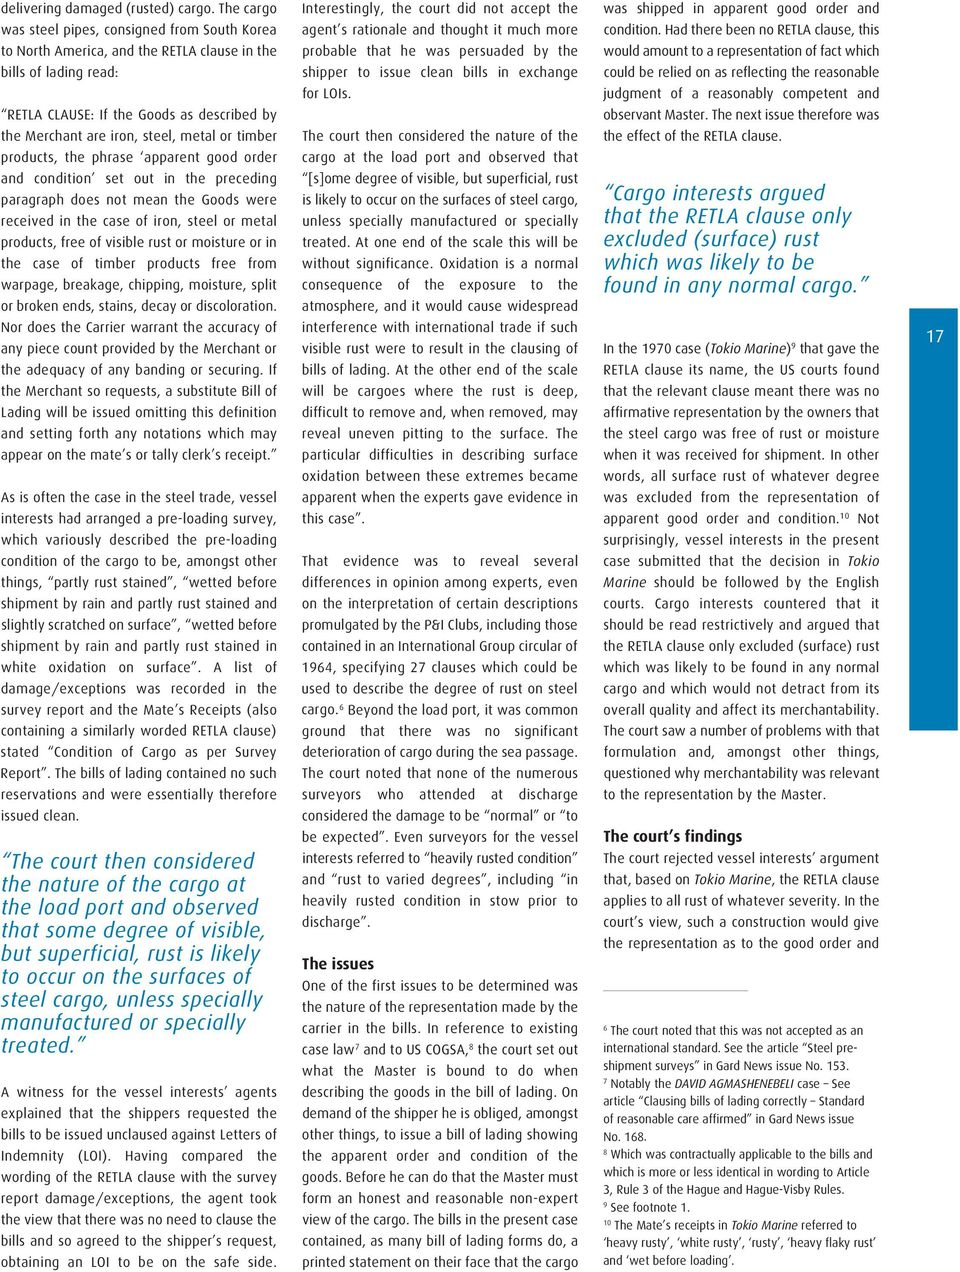 GARDNEWS  Low-sulphur fuels explained PAGE 4  English law